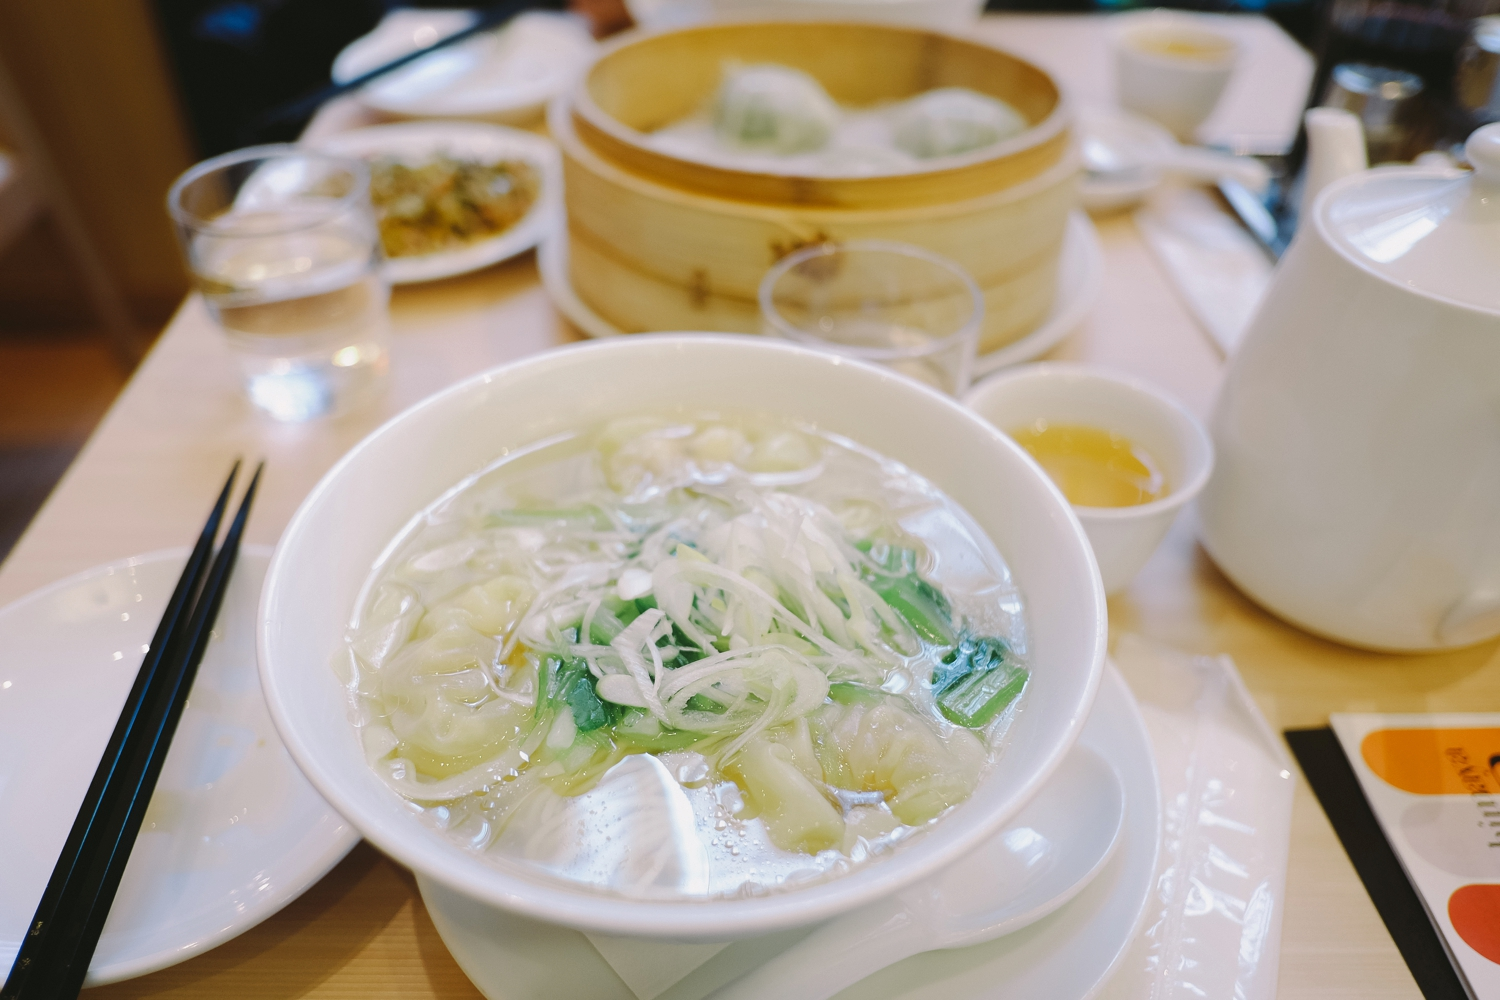 Wonton soup. I almost can't look at it because I get too upset that there's no Din Tai here.